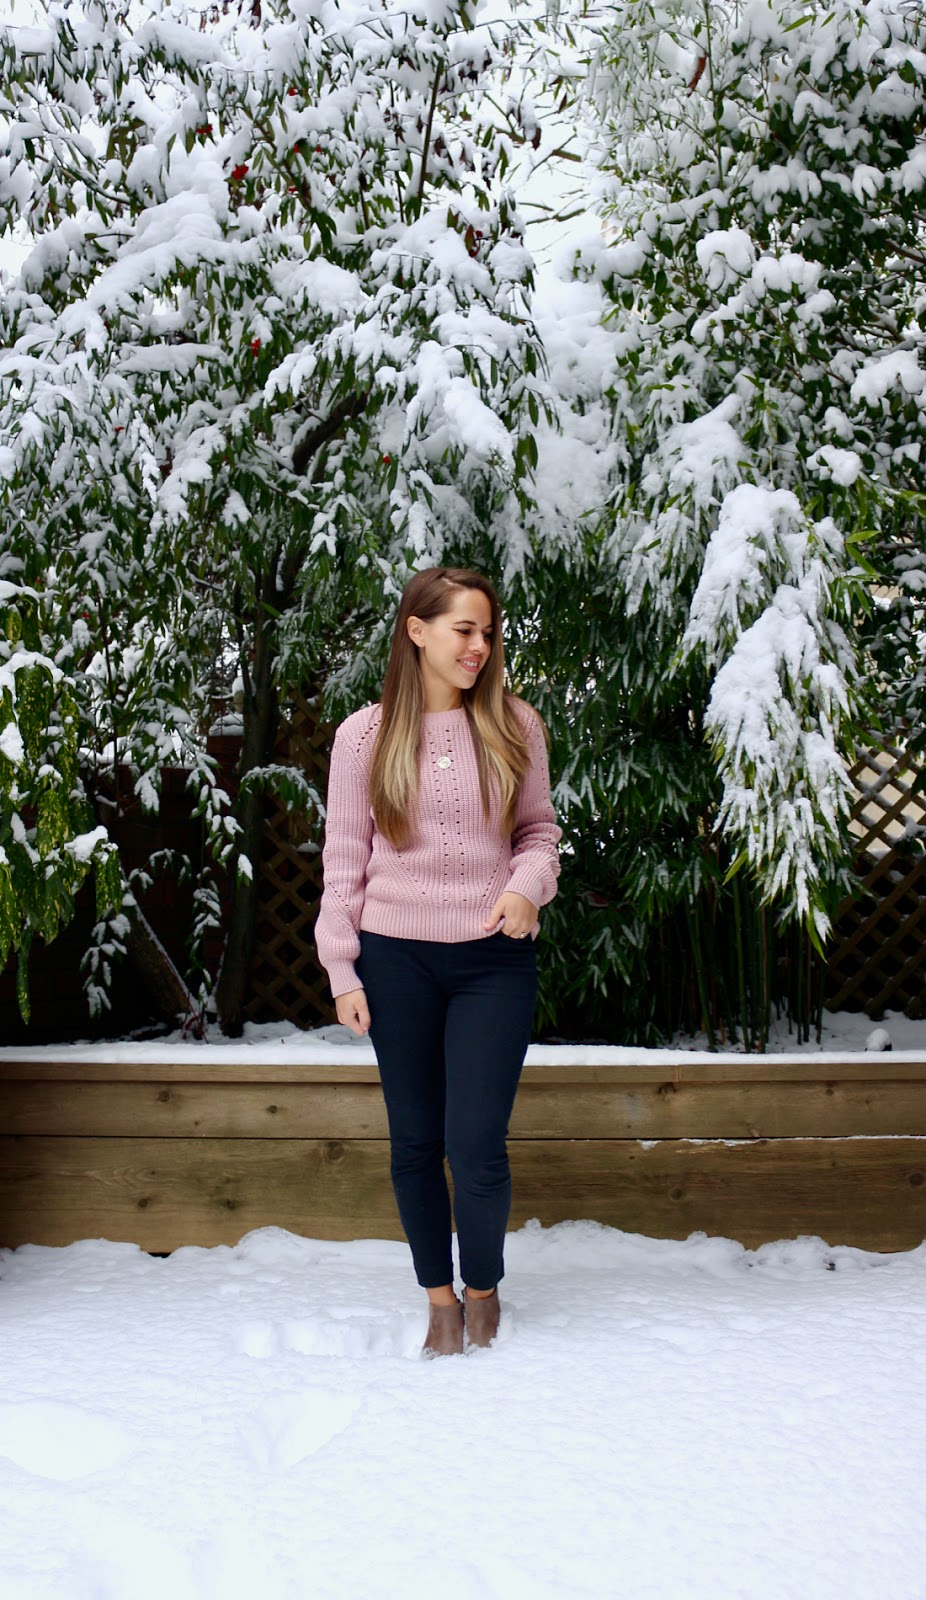 Jules in Flats - Pink Knit Sweater + Ankle Boots (Business Casual Winter Workwear on a Budget)